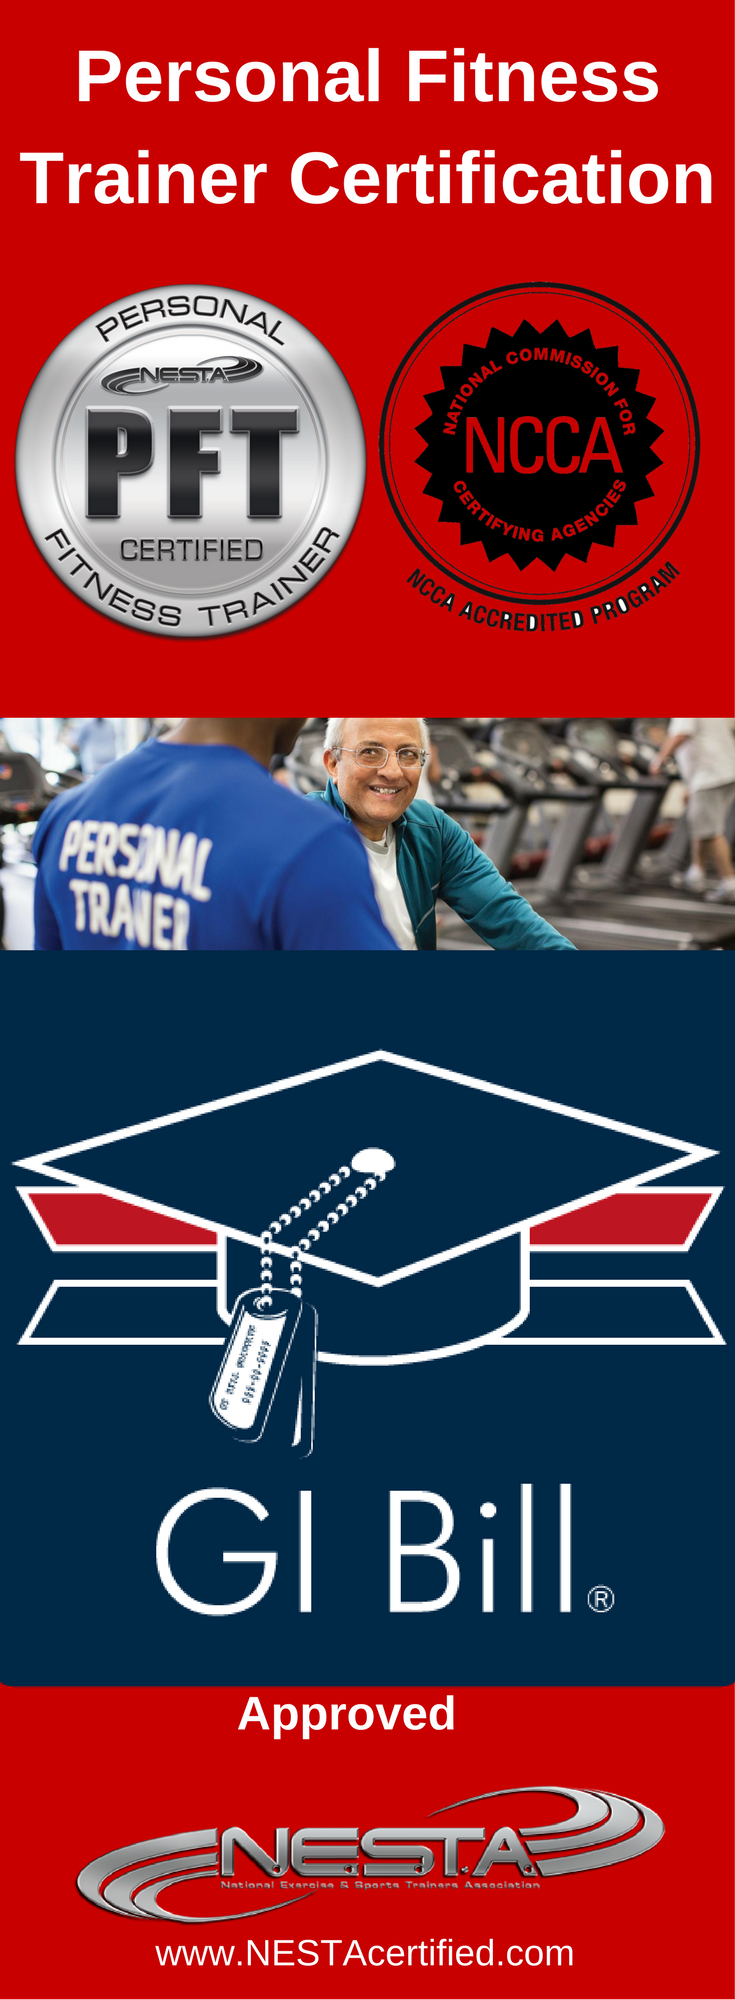 Gi bill aproved personal trainer certification fitness trainer nesta is approved for gi bill reimbursement for the personal fitness trainer certification free certification for approved veterans 1betcityfo Images